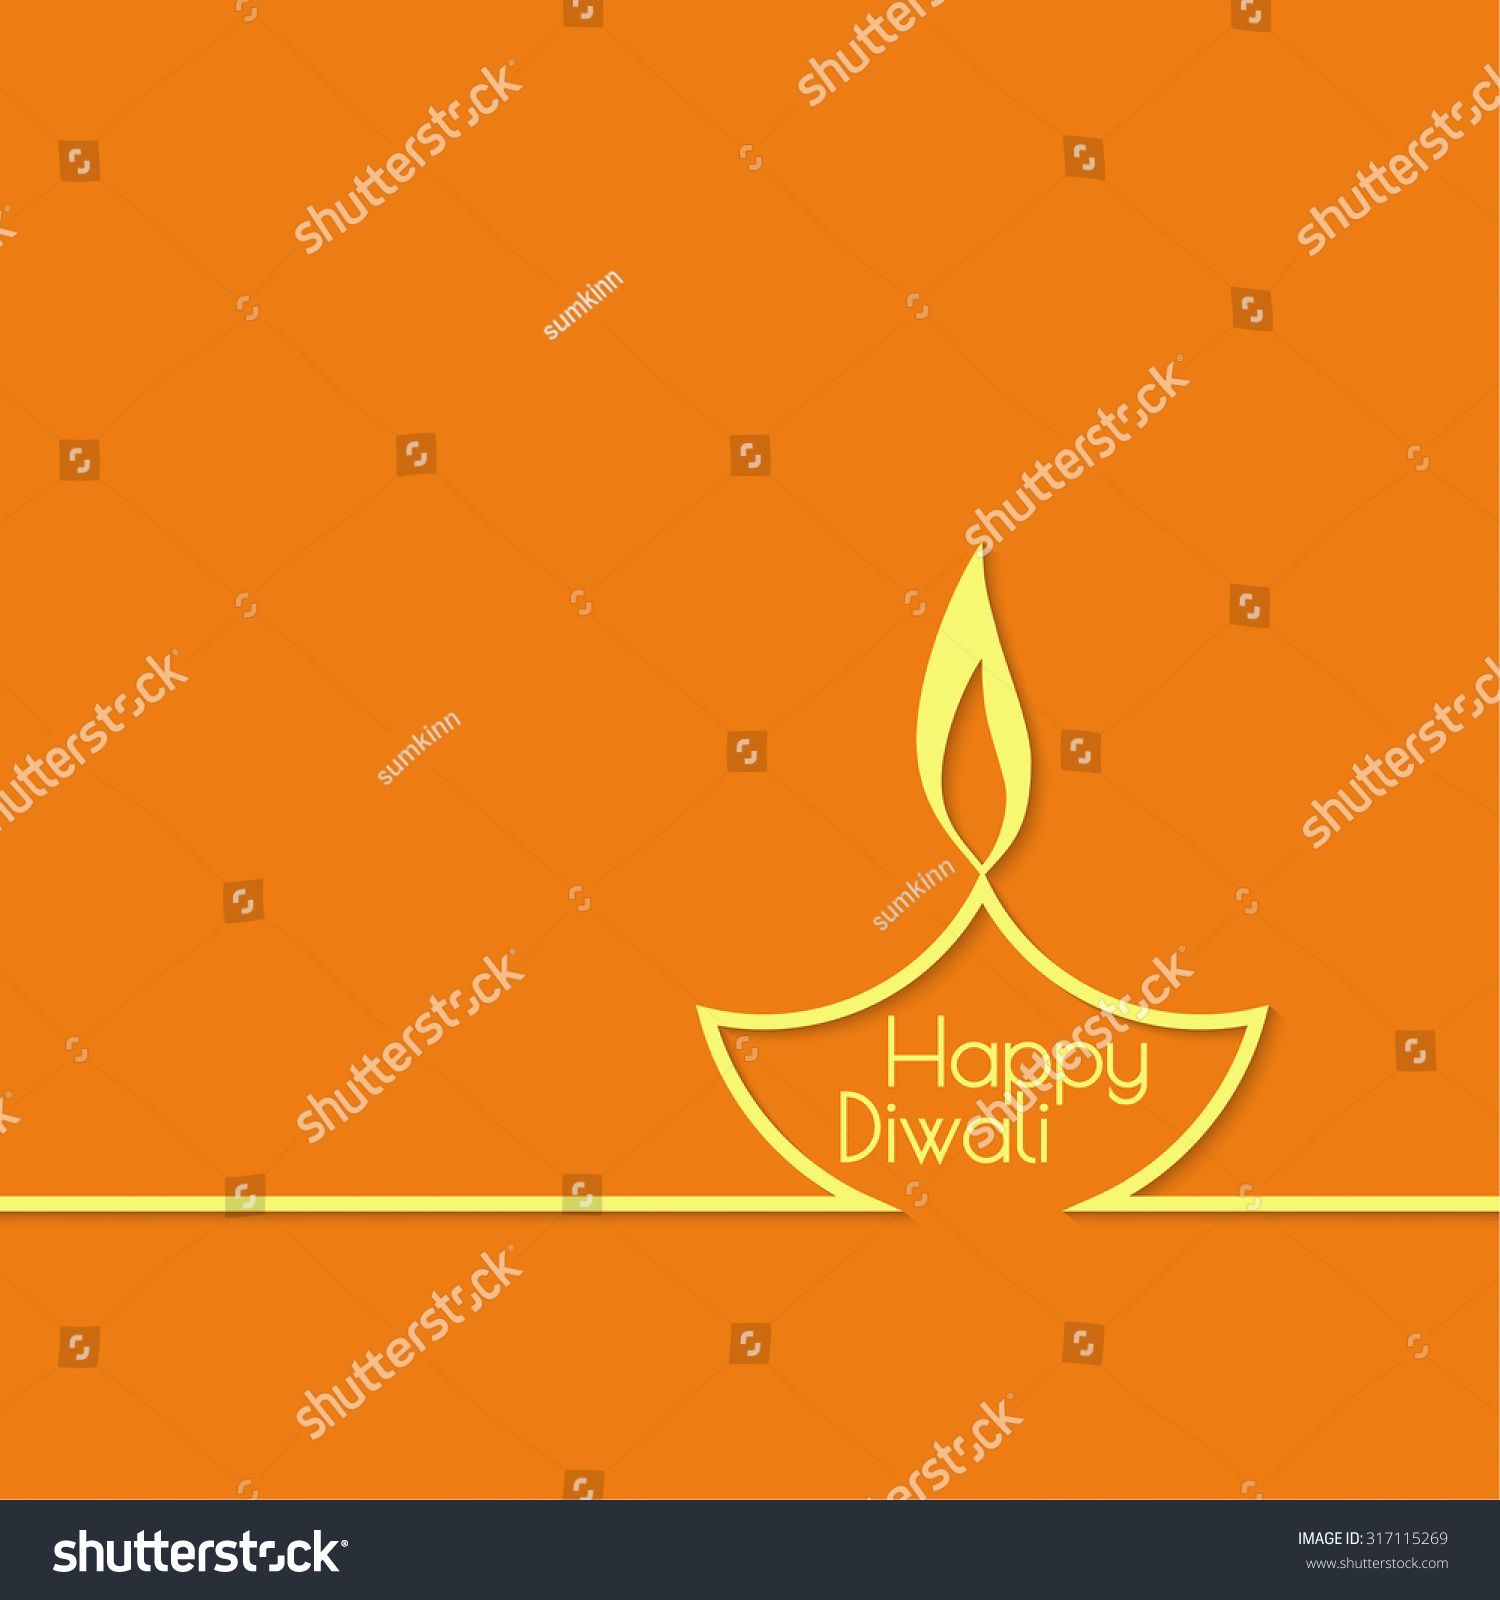 rangoli abstract background wallpapers - photo #14